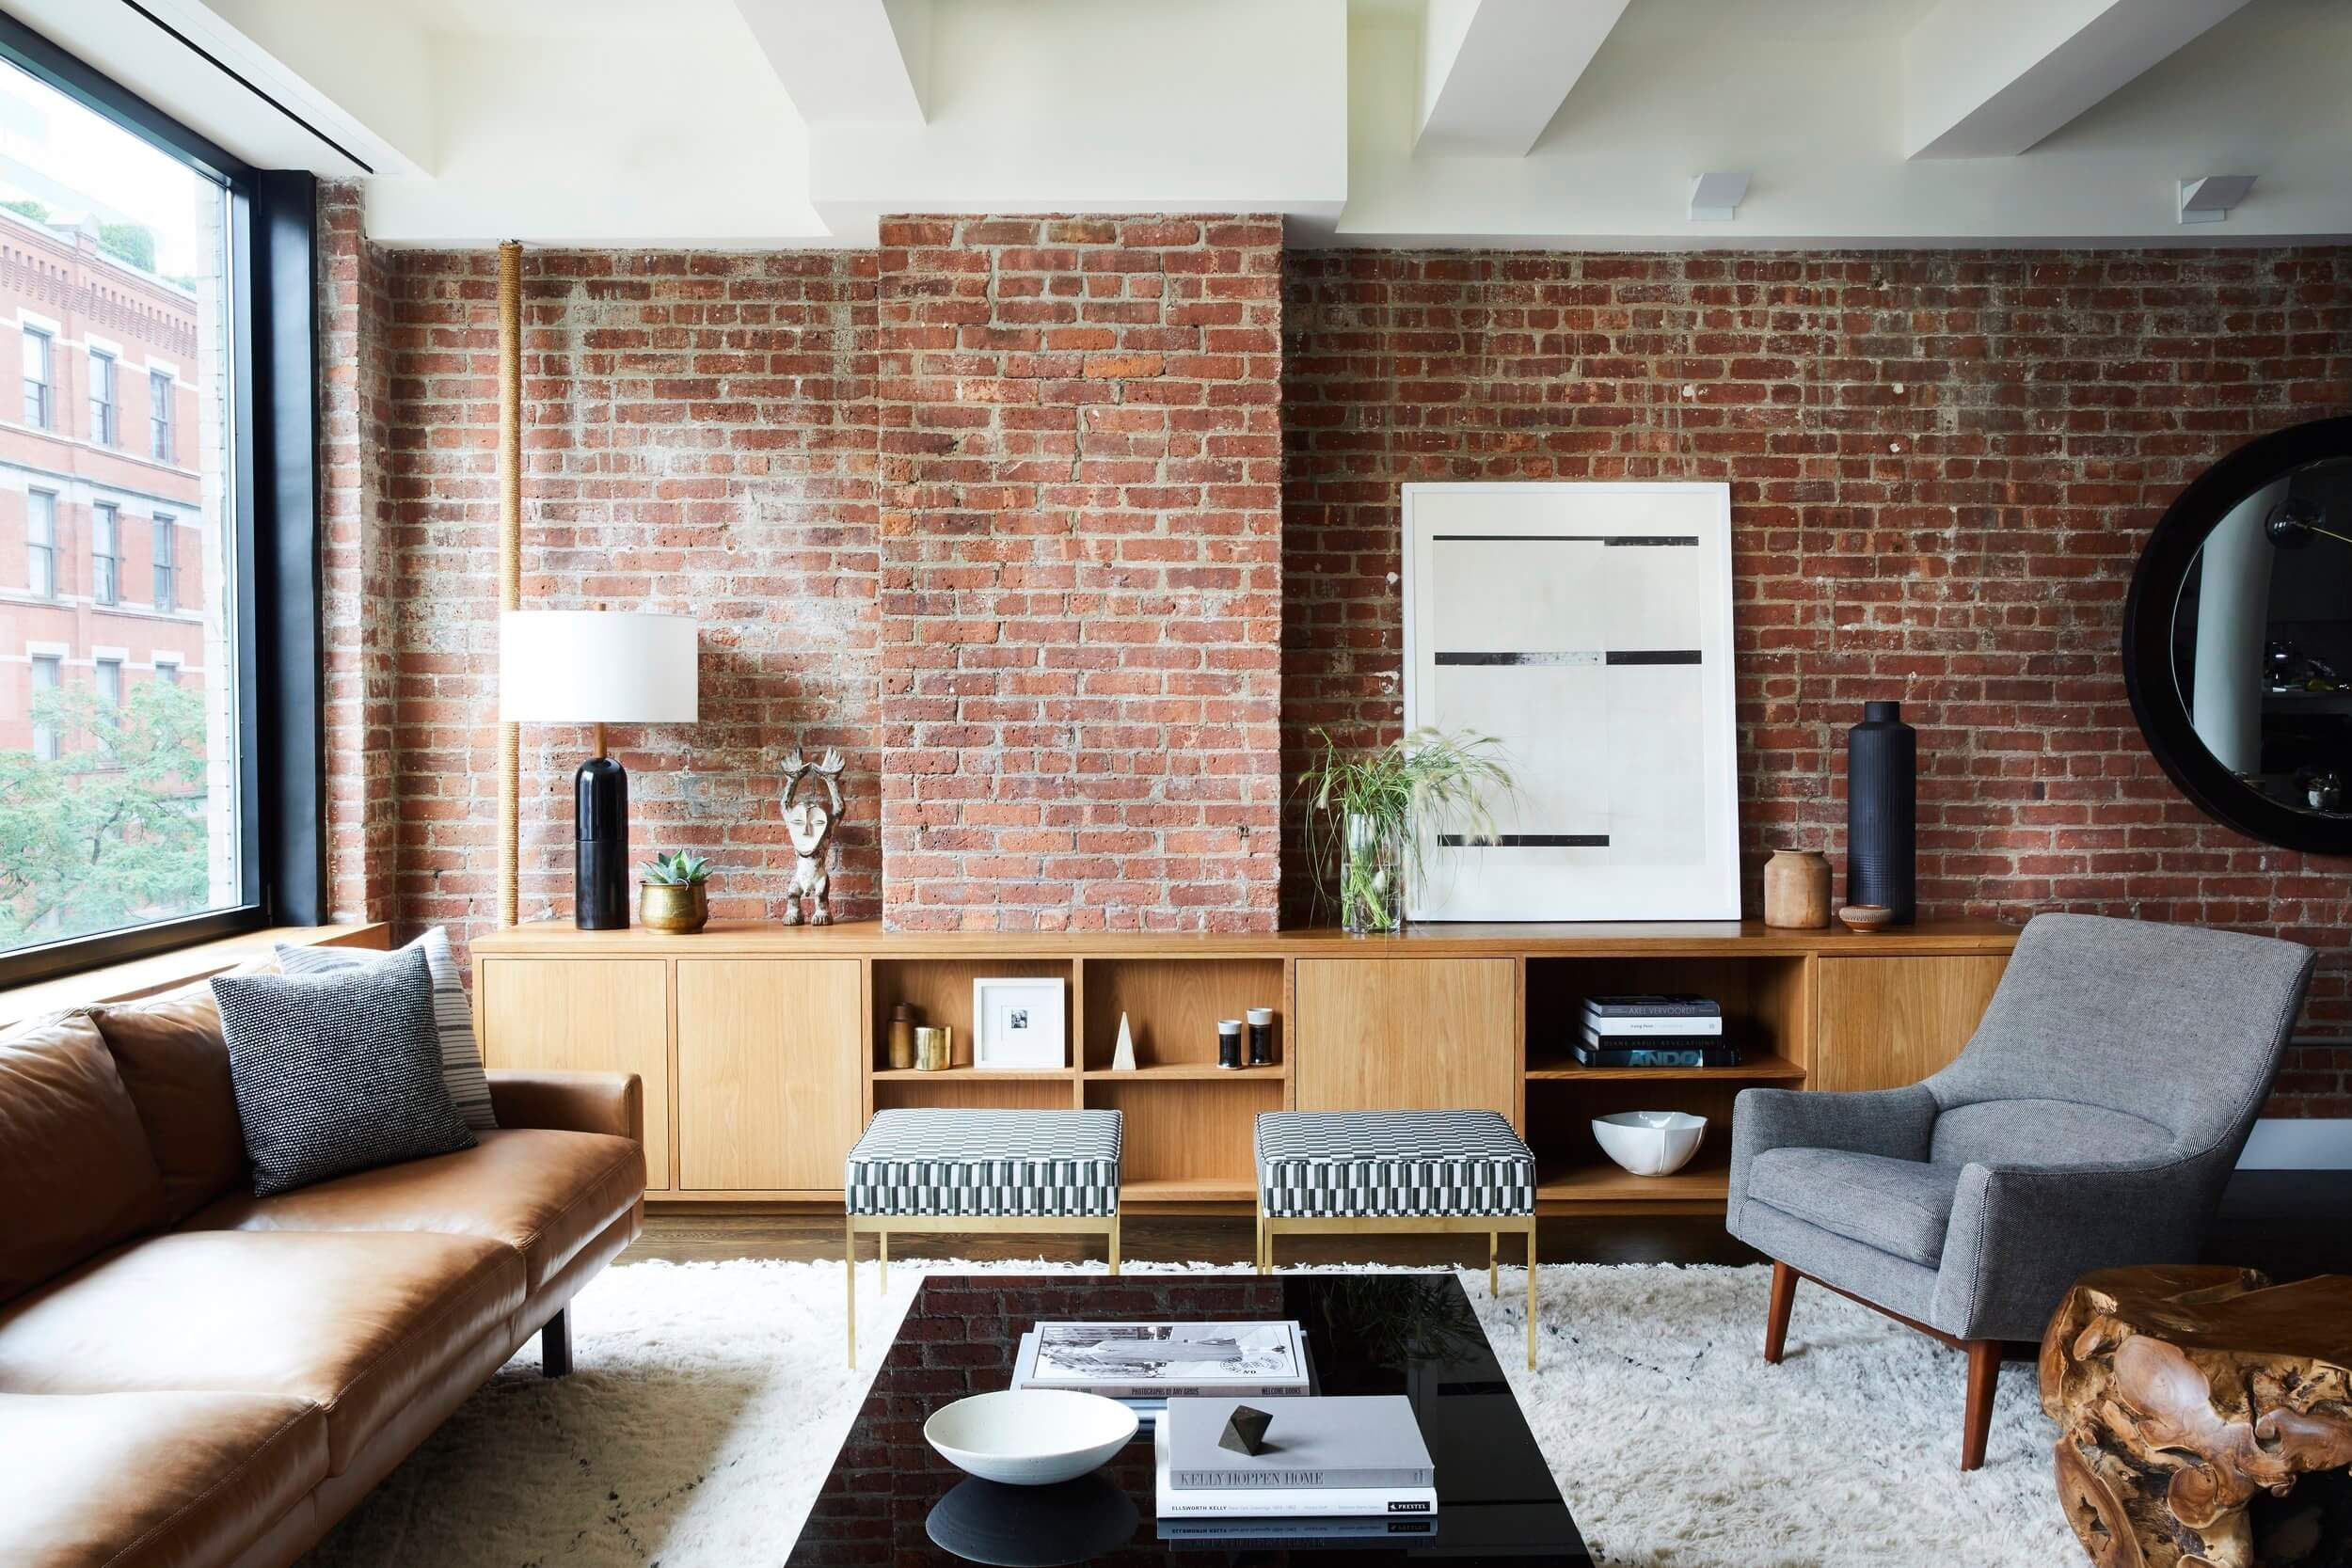 Discover The Brick Accent Wall Done Two Ways Two Rooms Take On The Exposed Brick Wall B Brick Living Room Brick Wall Living Room Minimalist Living Room Decor